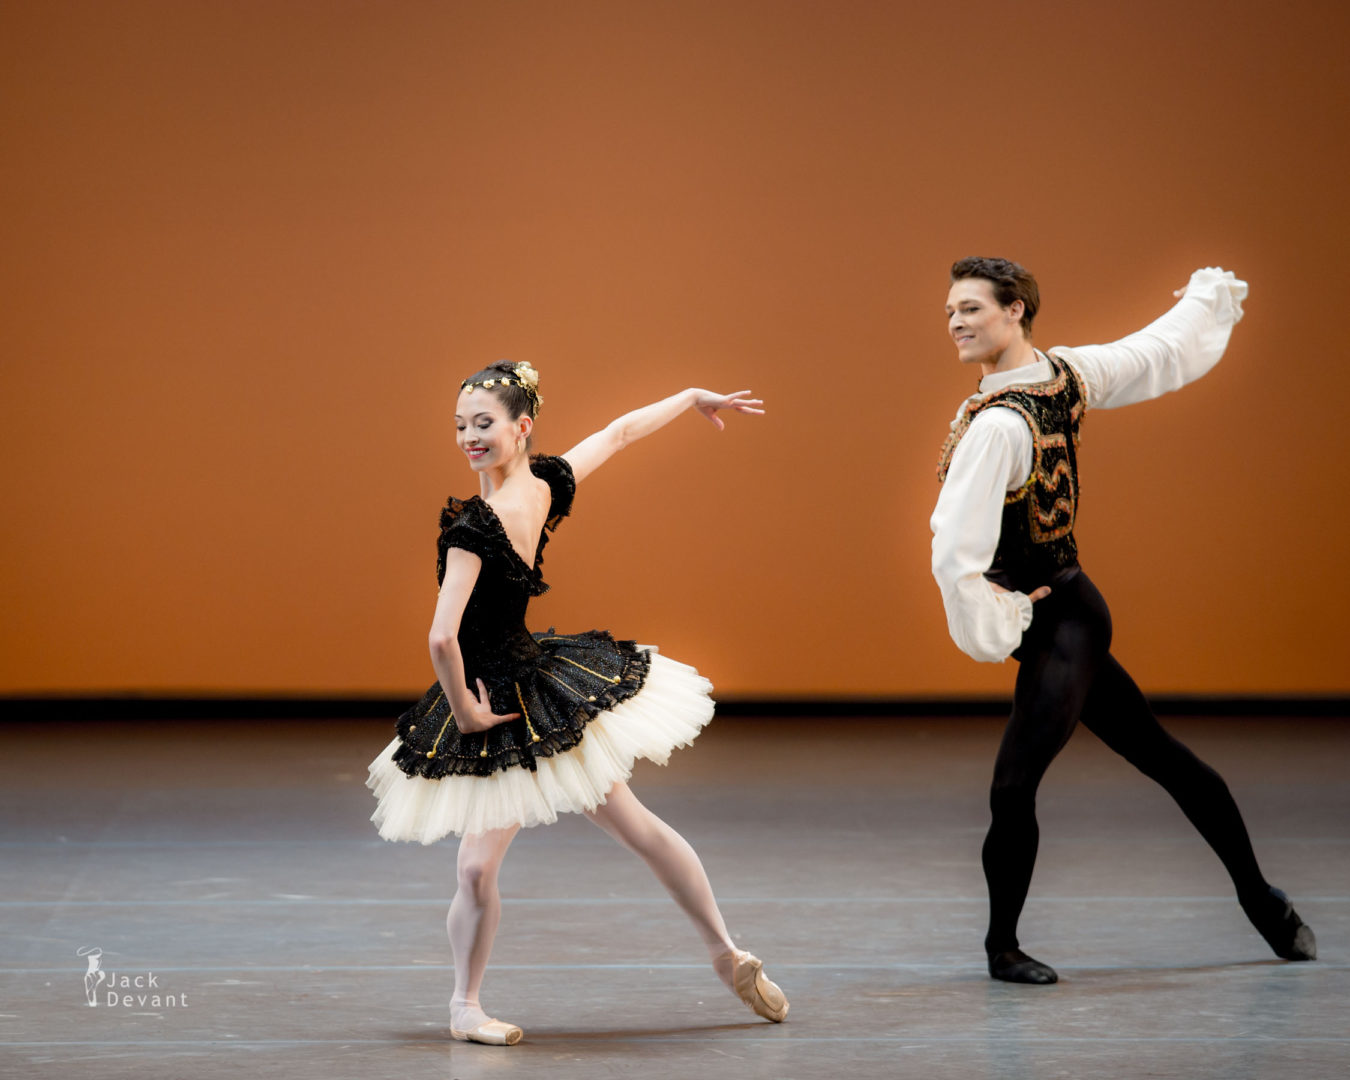 Hannah O'Neill and Hugo Marchand in Esmeralda pas de deux, music by Cesare Pugni, choreography by Nikolay Berezov after Jules Perrot